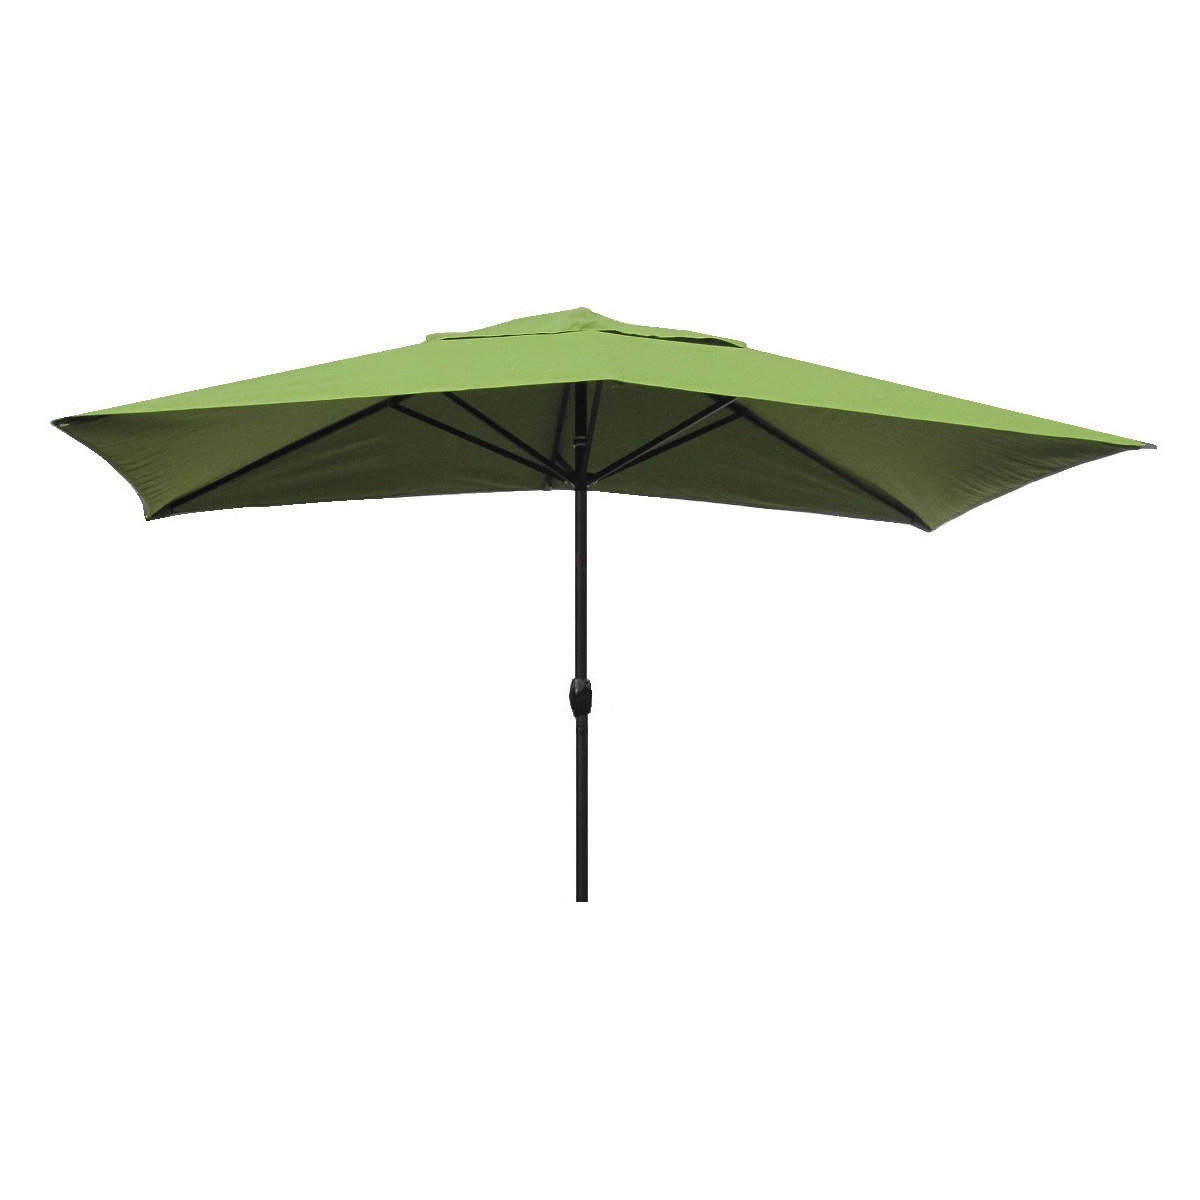 Most Recent Wieczorek Auto Tilt Rectangular Market Sunbrella Umbrellas For Gries 10' X 6' Rectangular Market Umbrella (Gallery 13 of 20)